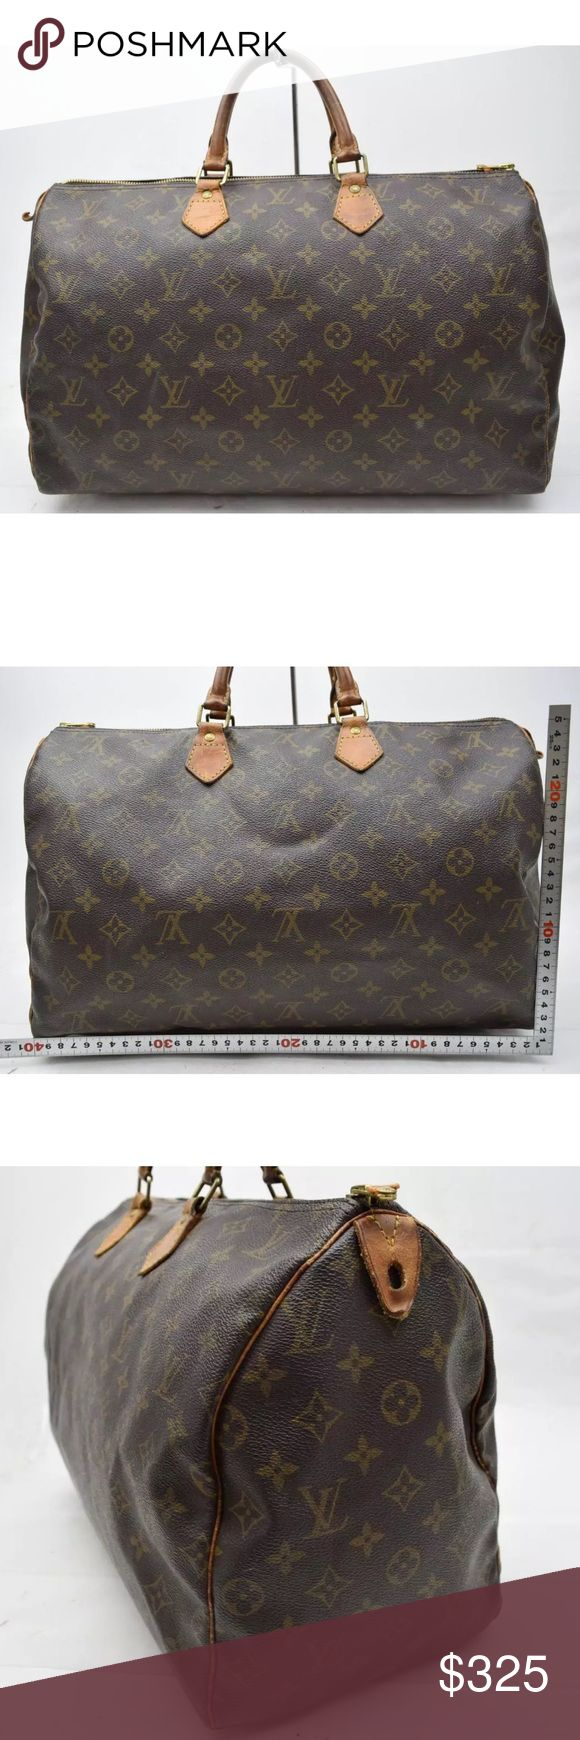 AUTH LOUIS VUITTON SPEEDY 40 VINTAGE SATCHEL BAG Shows minor wear on the corners. Zipper pull missing. Minor discoloration on handles. Inside there are stains.  on the bottom. Zipper works properly. Louis Vuitton Bags Satchels